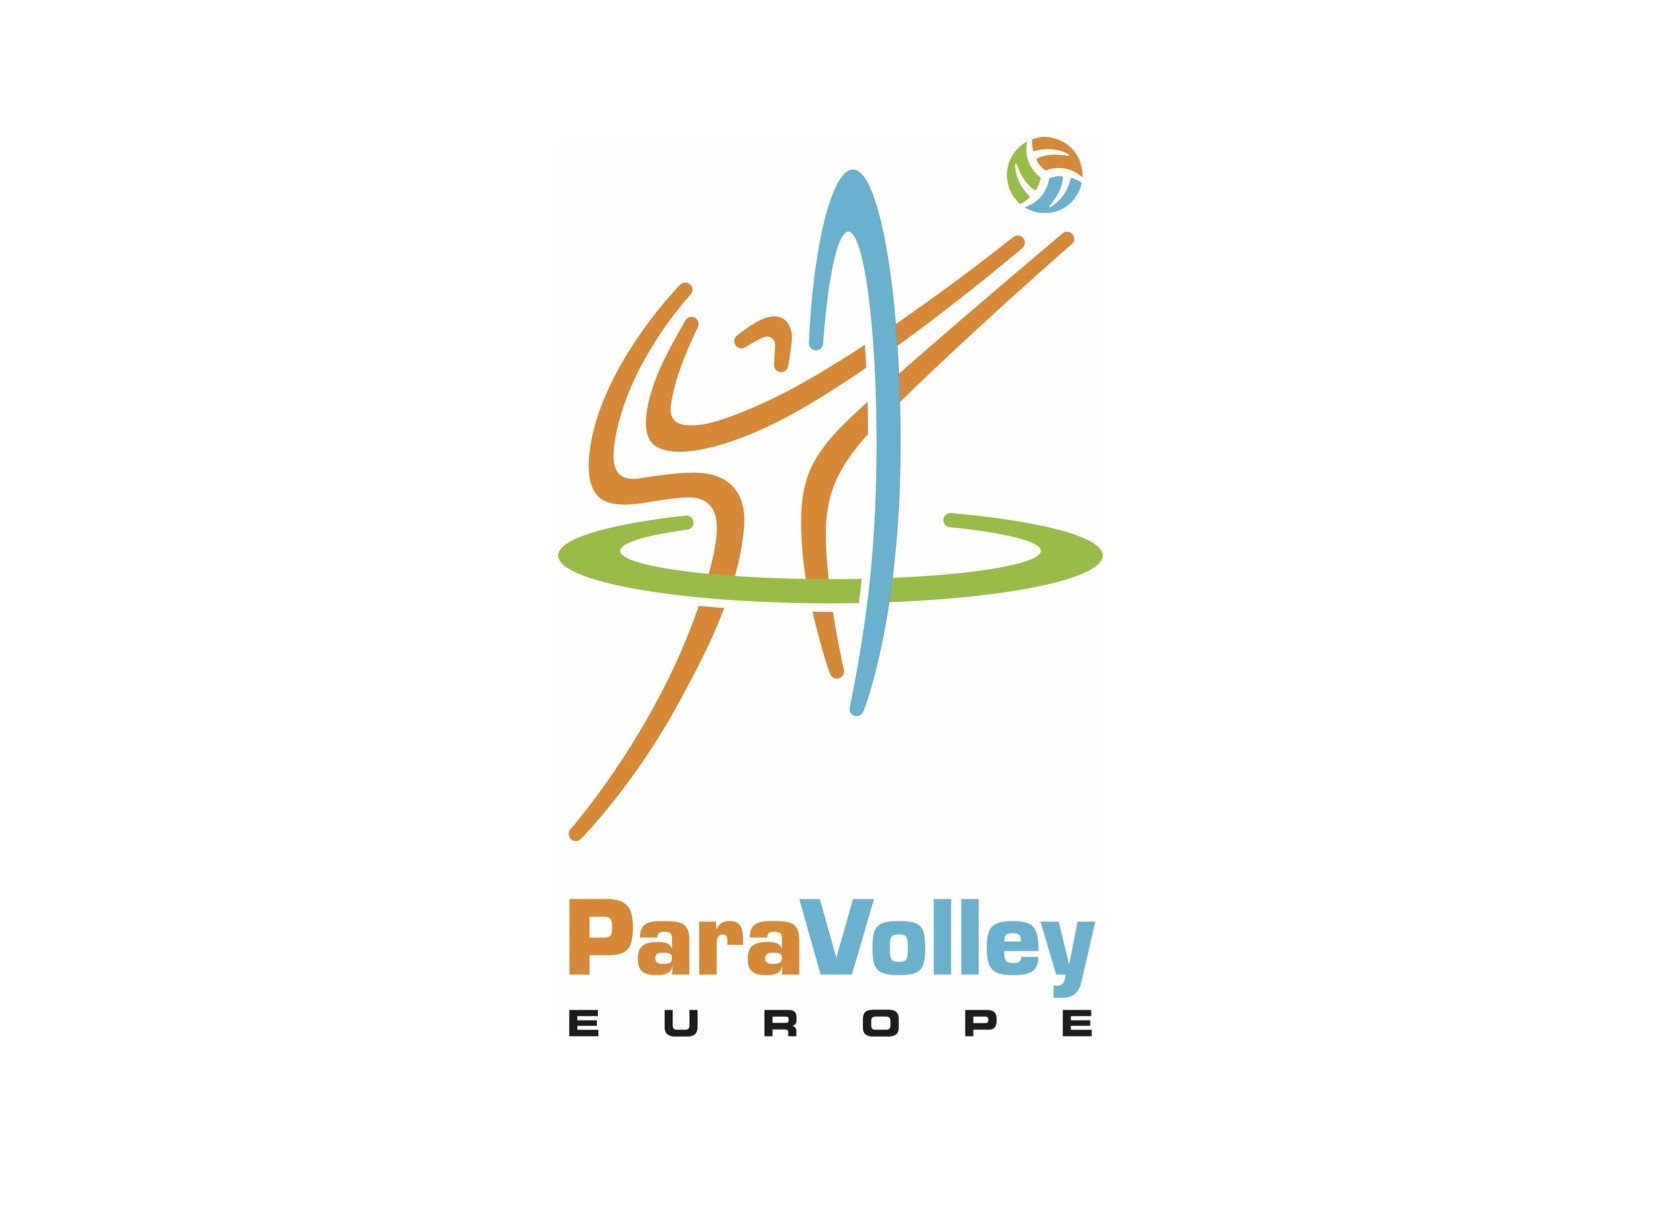 ParaVolley Europe hires first employee